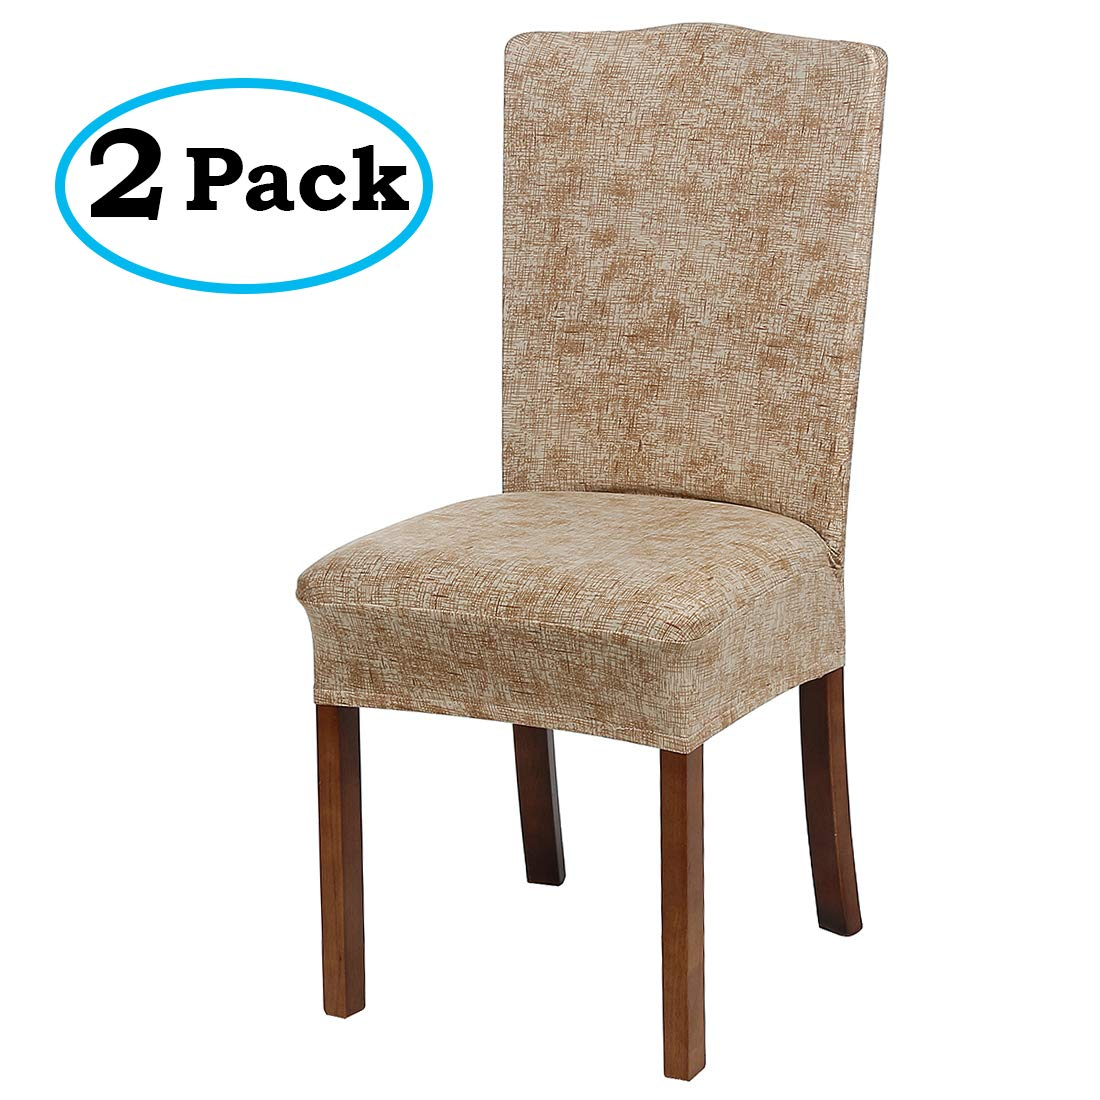 misaya Stretch Spandex Dining Room Chair Cover Removable Washable Chair Protector Flowers Painting Stool Seat Slipcover Set of 2, Khaki